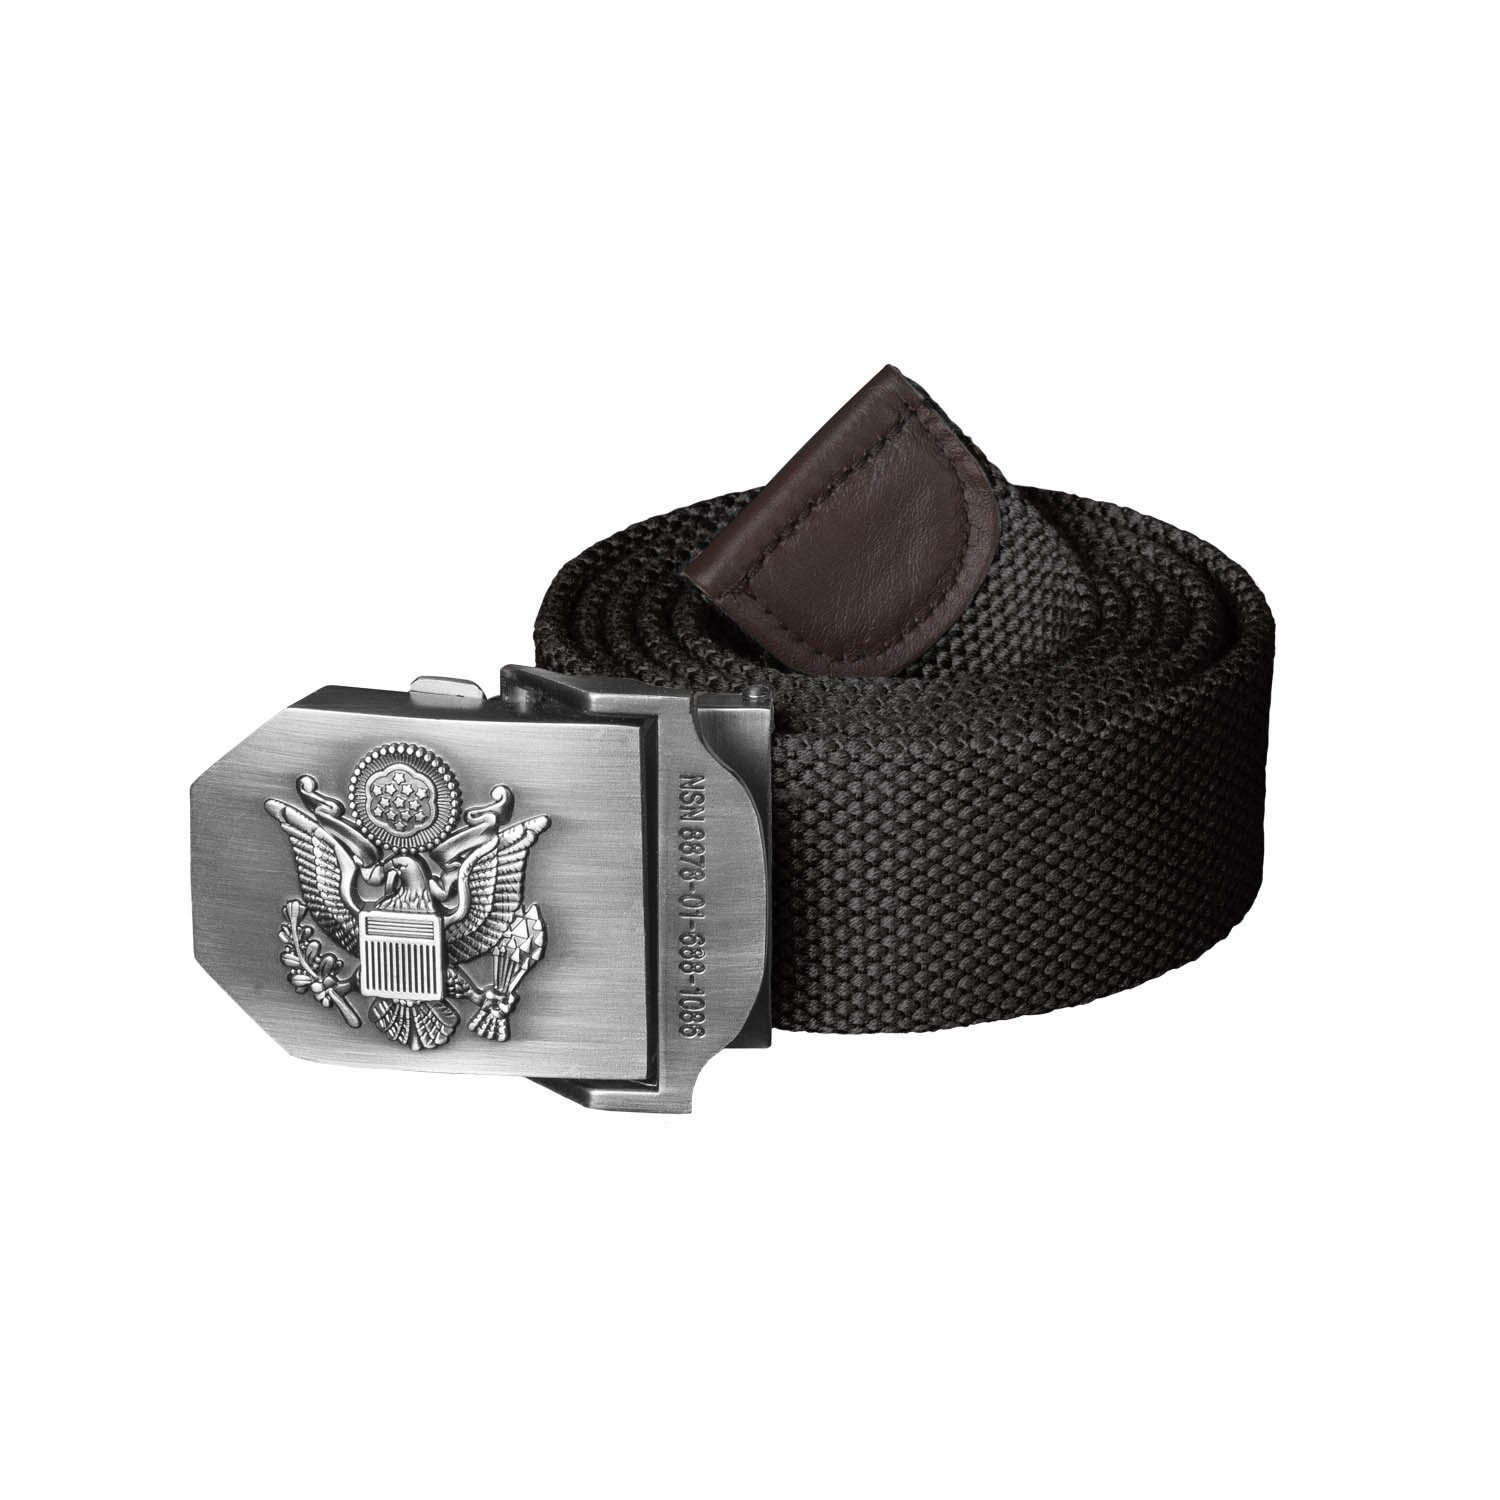 ARMY BELT - Black